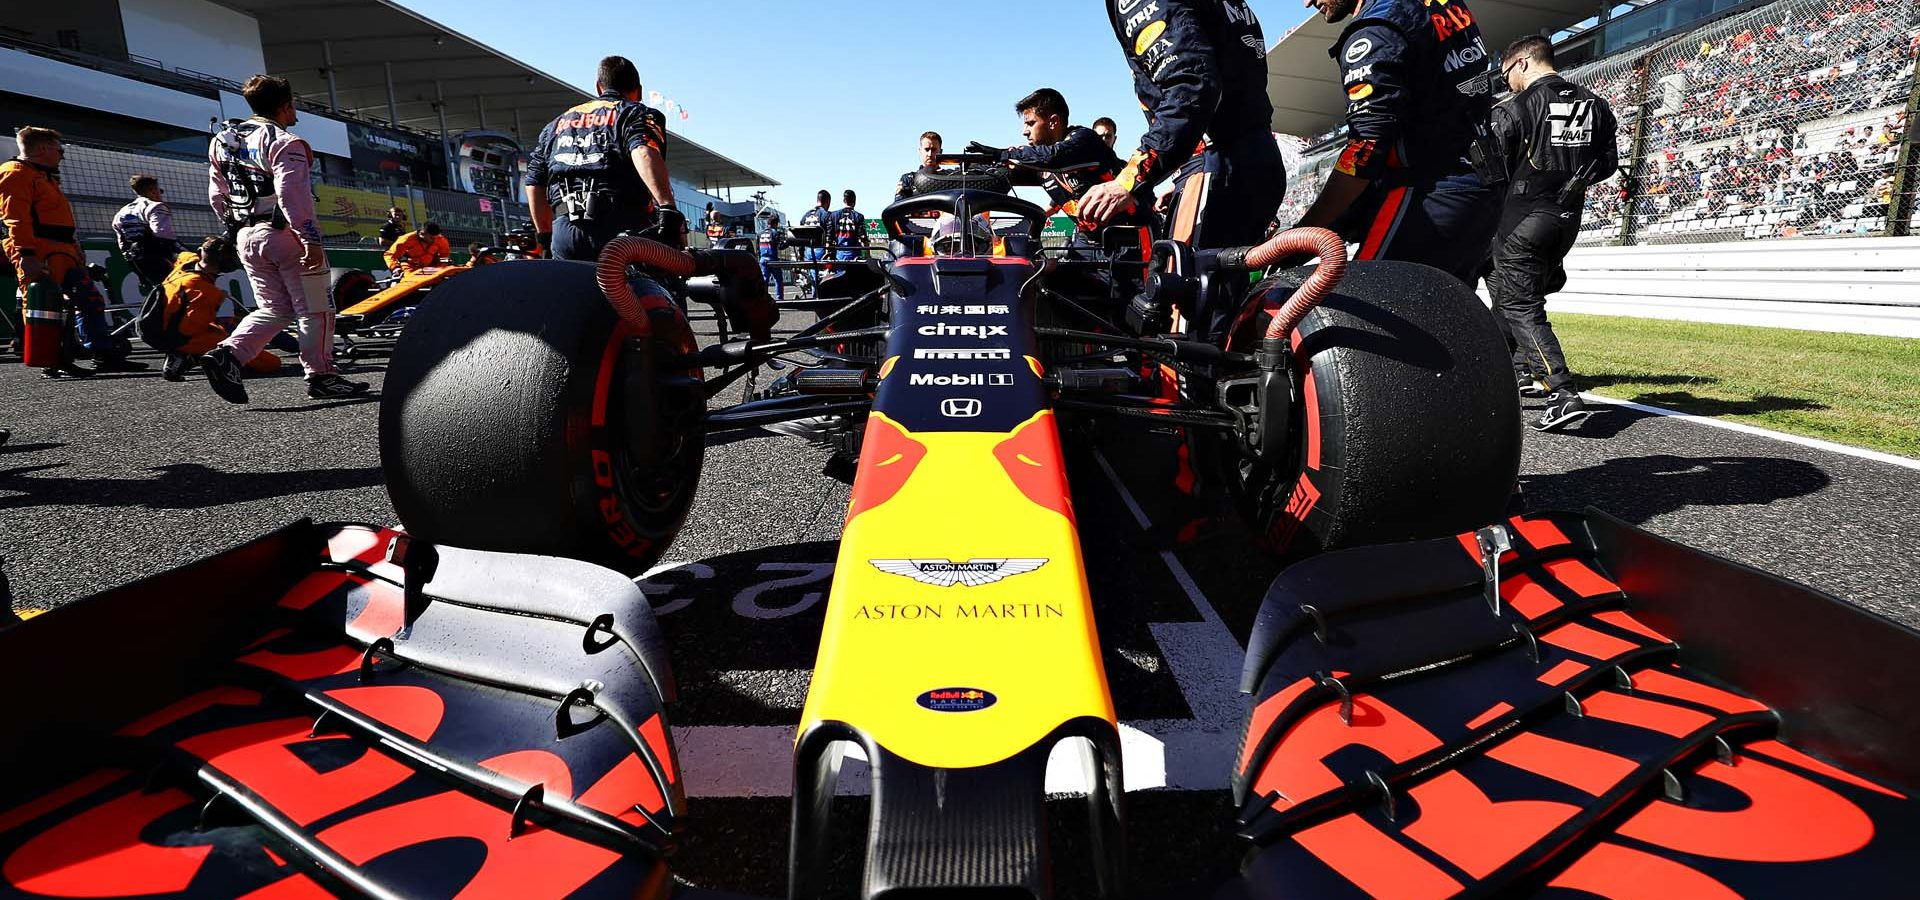 SUZUKA, JAPAN - OCTOBER 13: Max Verstappen of Netherlands and Red Bull Racing prepares to drive on the grid before the F1 Grand Prix of Japan at Suzuka Circuit on October 13, 2019 in Suzuka, Japan. (Photo by Mark Thompson/Getty Images) // Getty Images / Red Bull Content Pool  // AP-21UY213GW2111 // Usage for editorial use only //